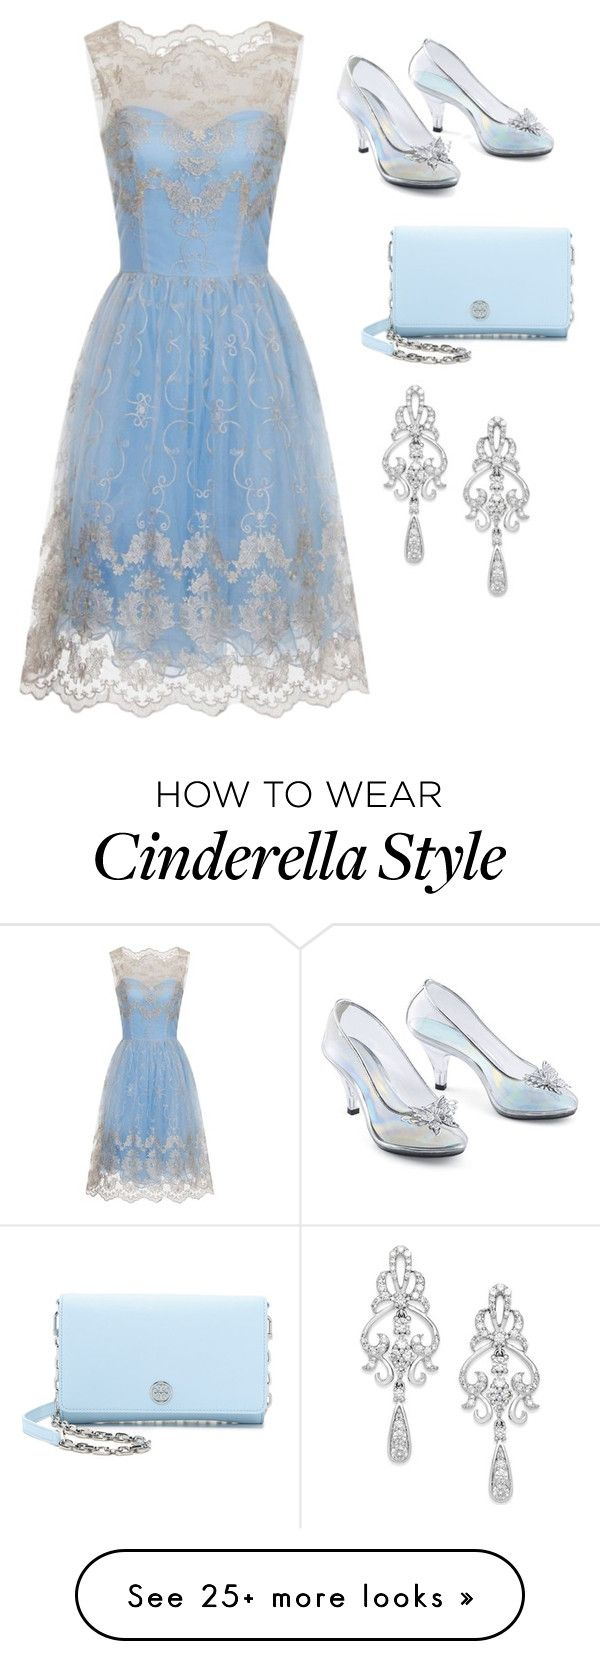 """modern Cinderella"" by xoxogosipgirlxoxo on Polyvore featuring Chi Chi, Wrapped In Love, Tory Burch and modern"